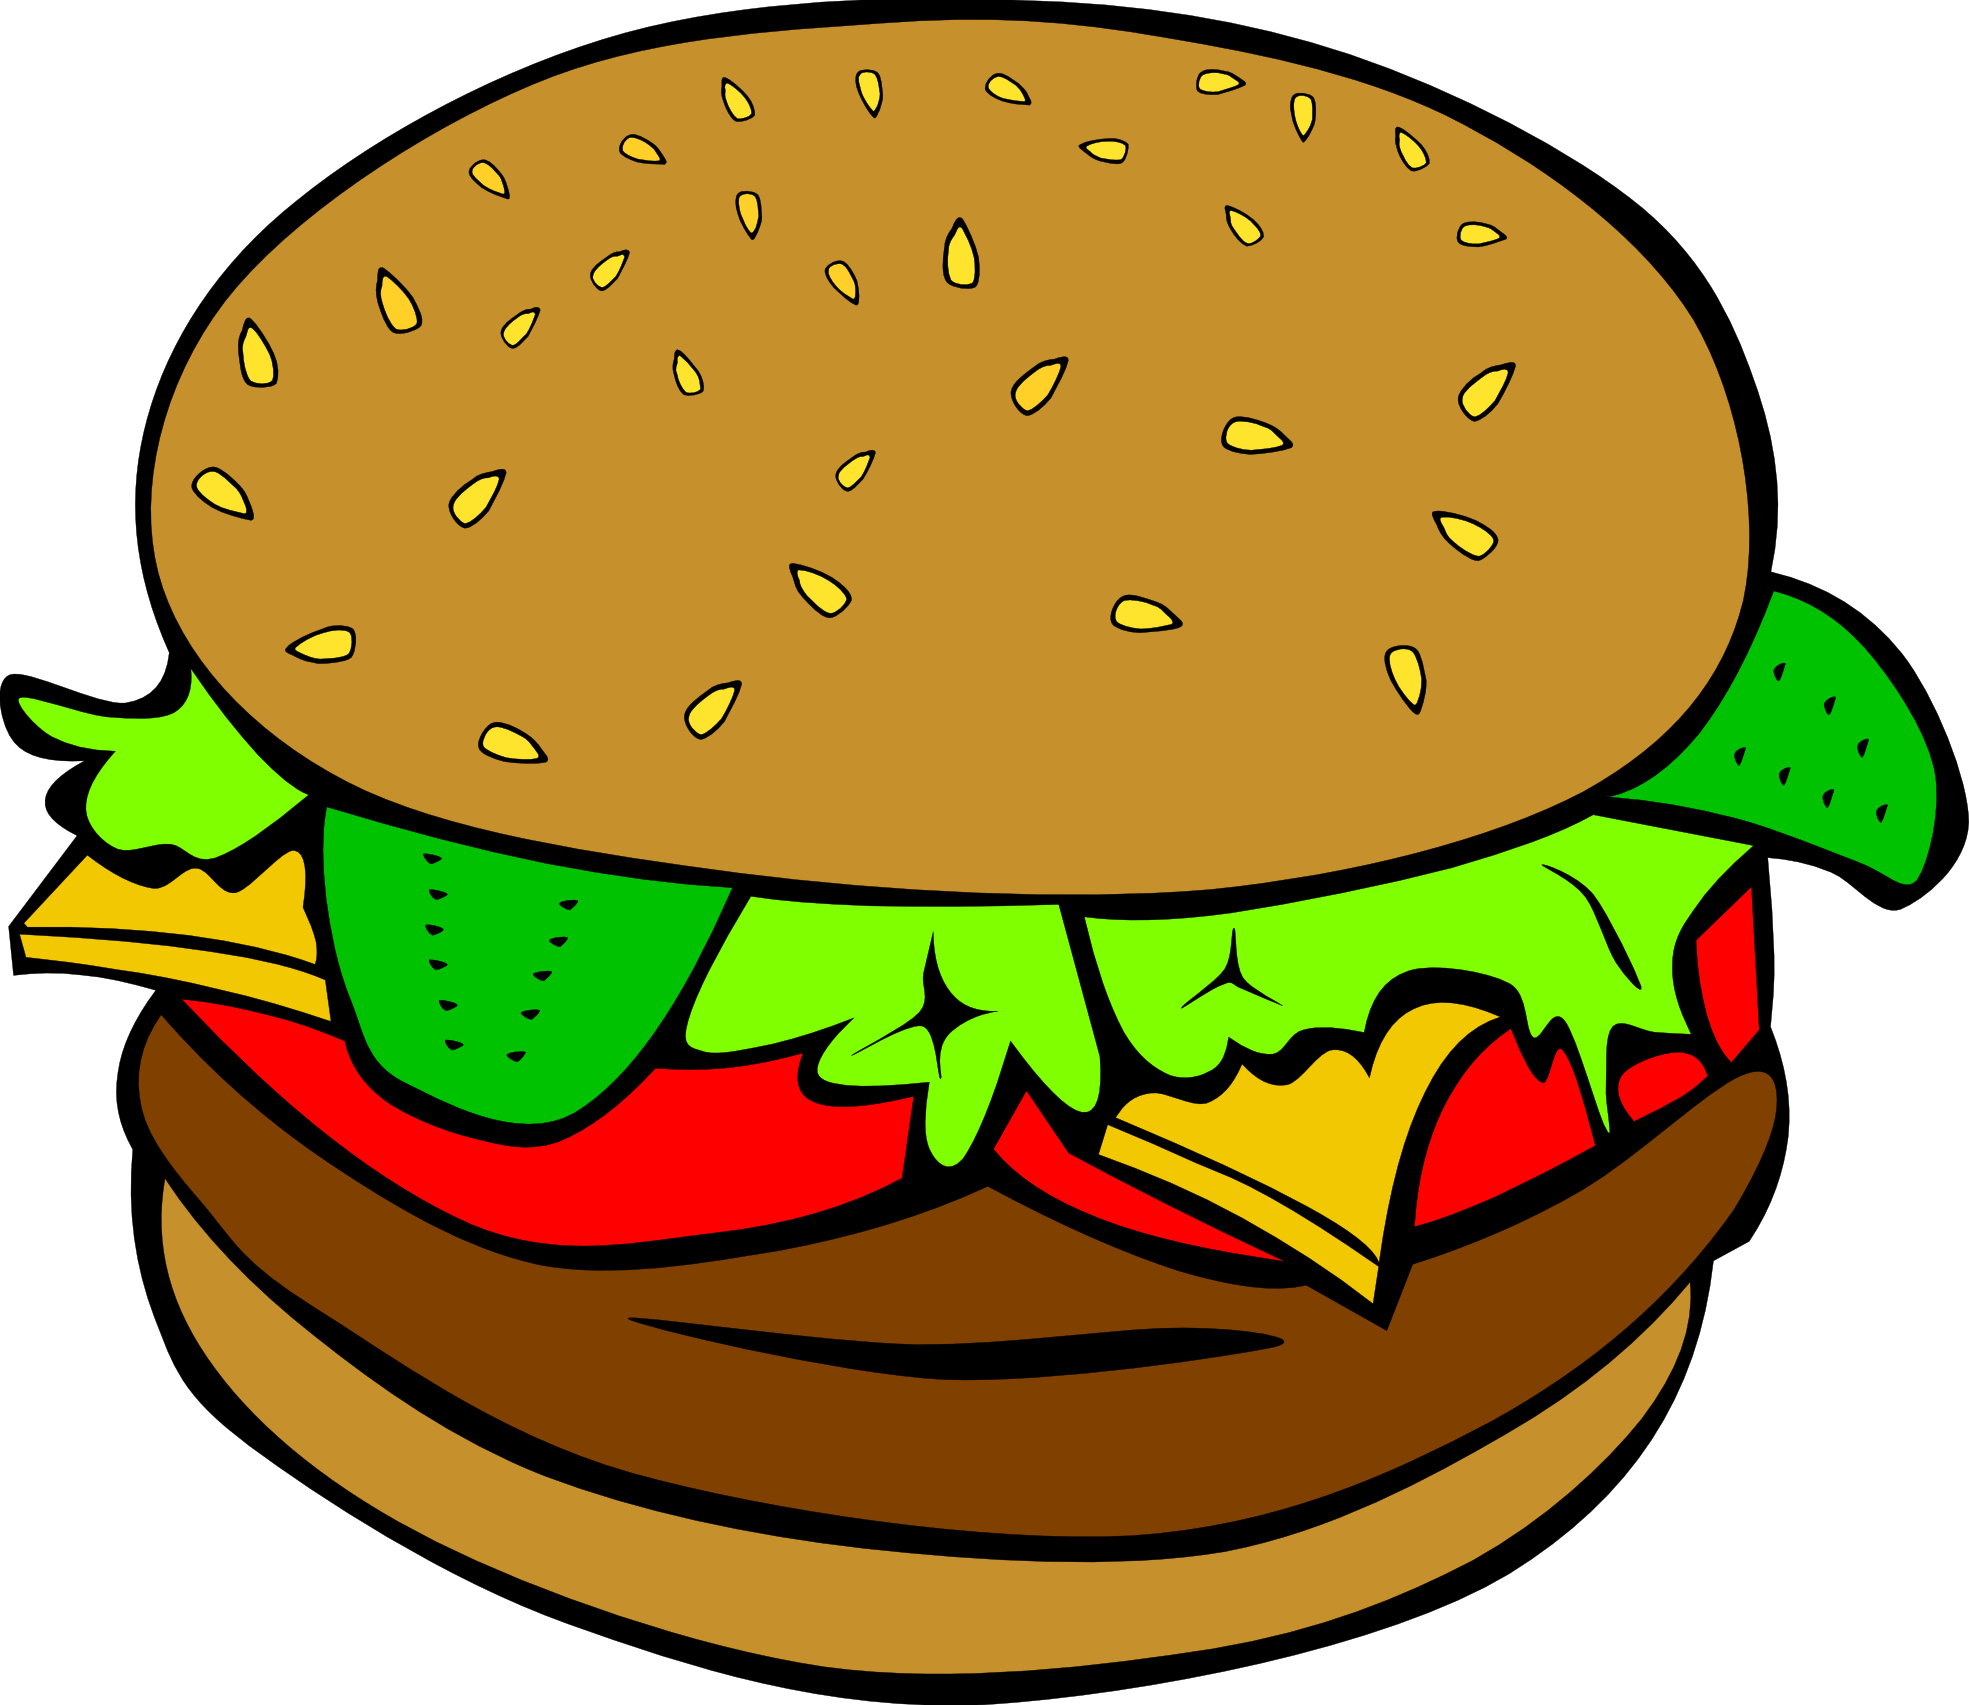 Luncheon clipart lunch outing. Free food cliparts download